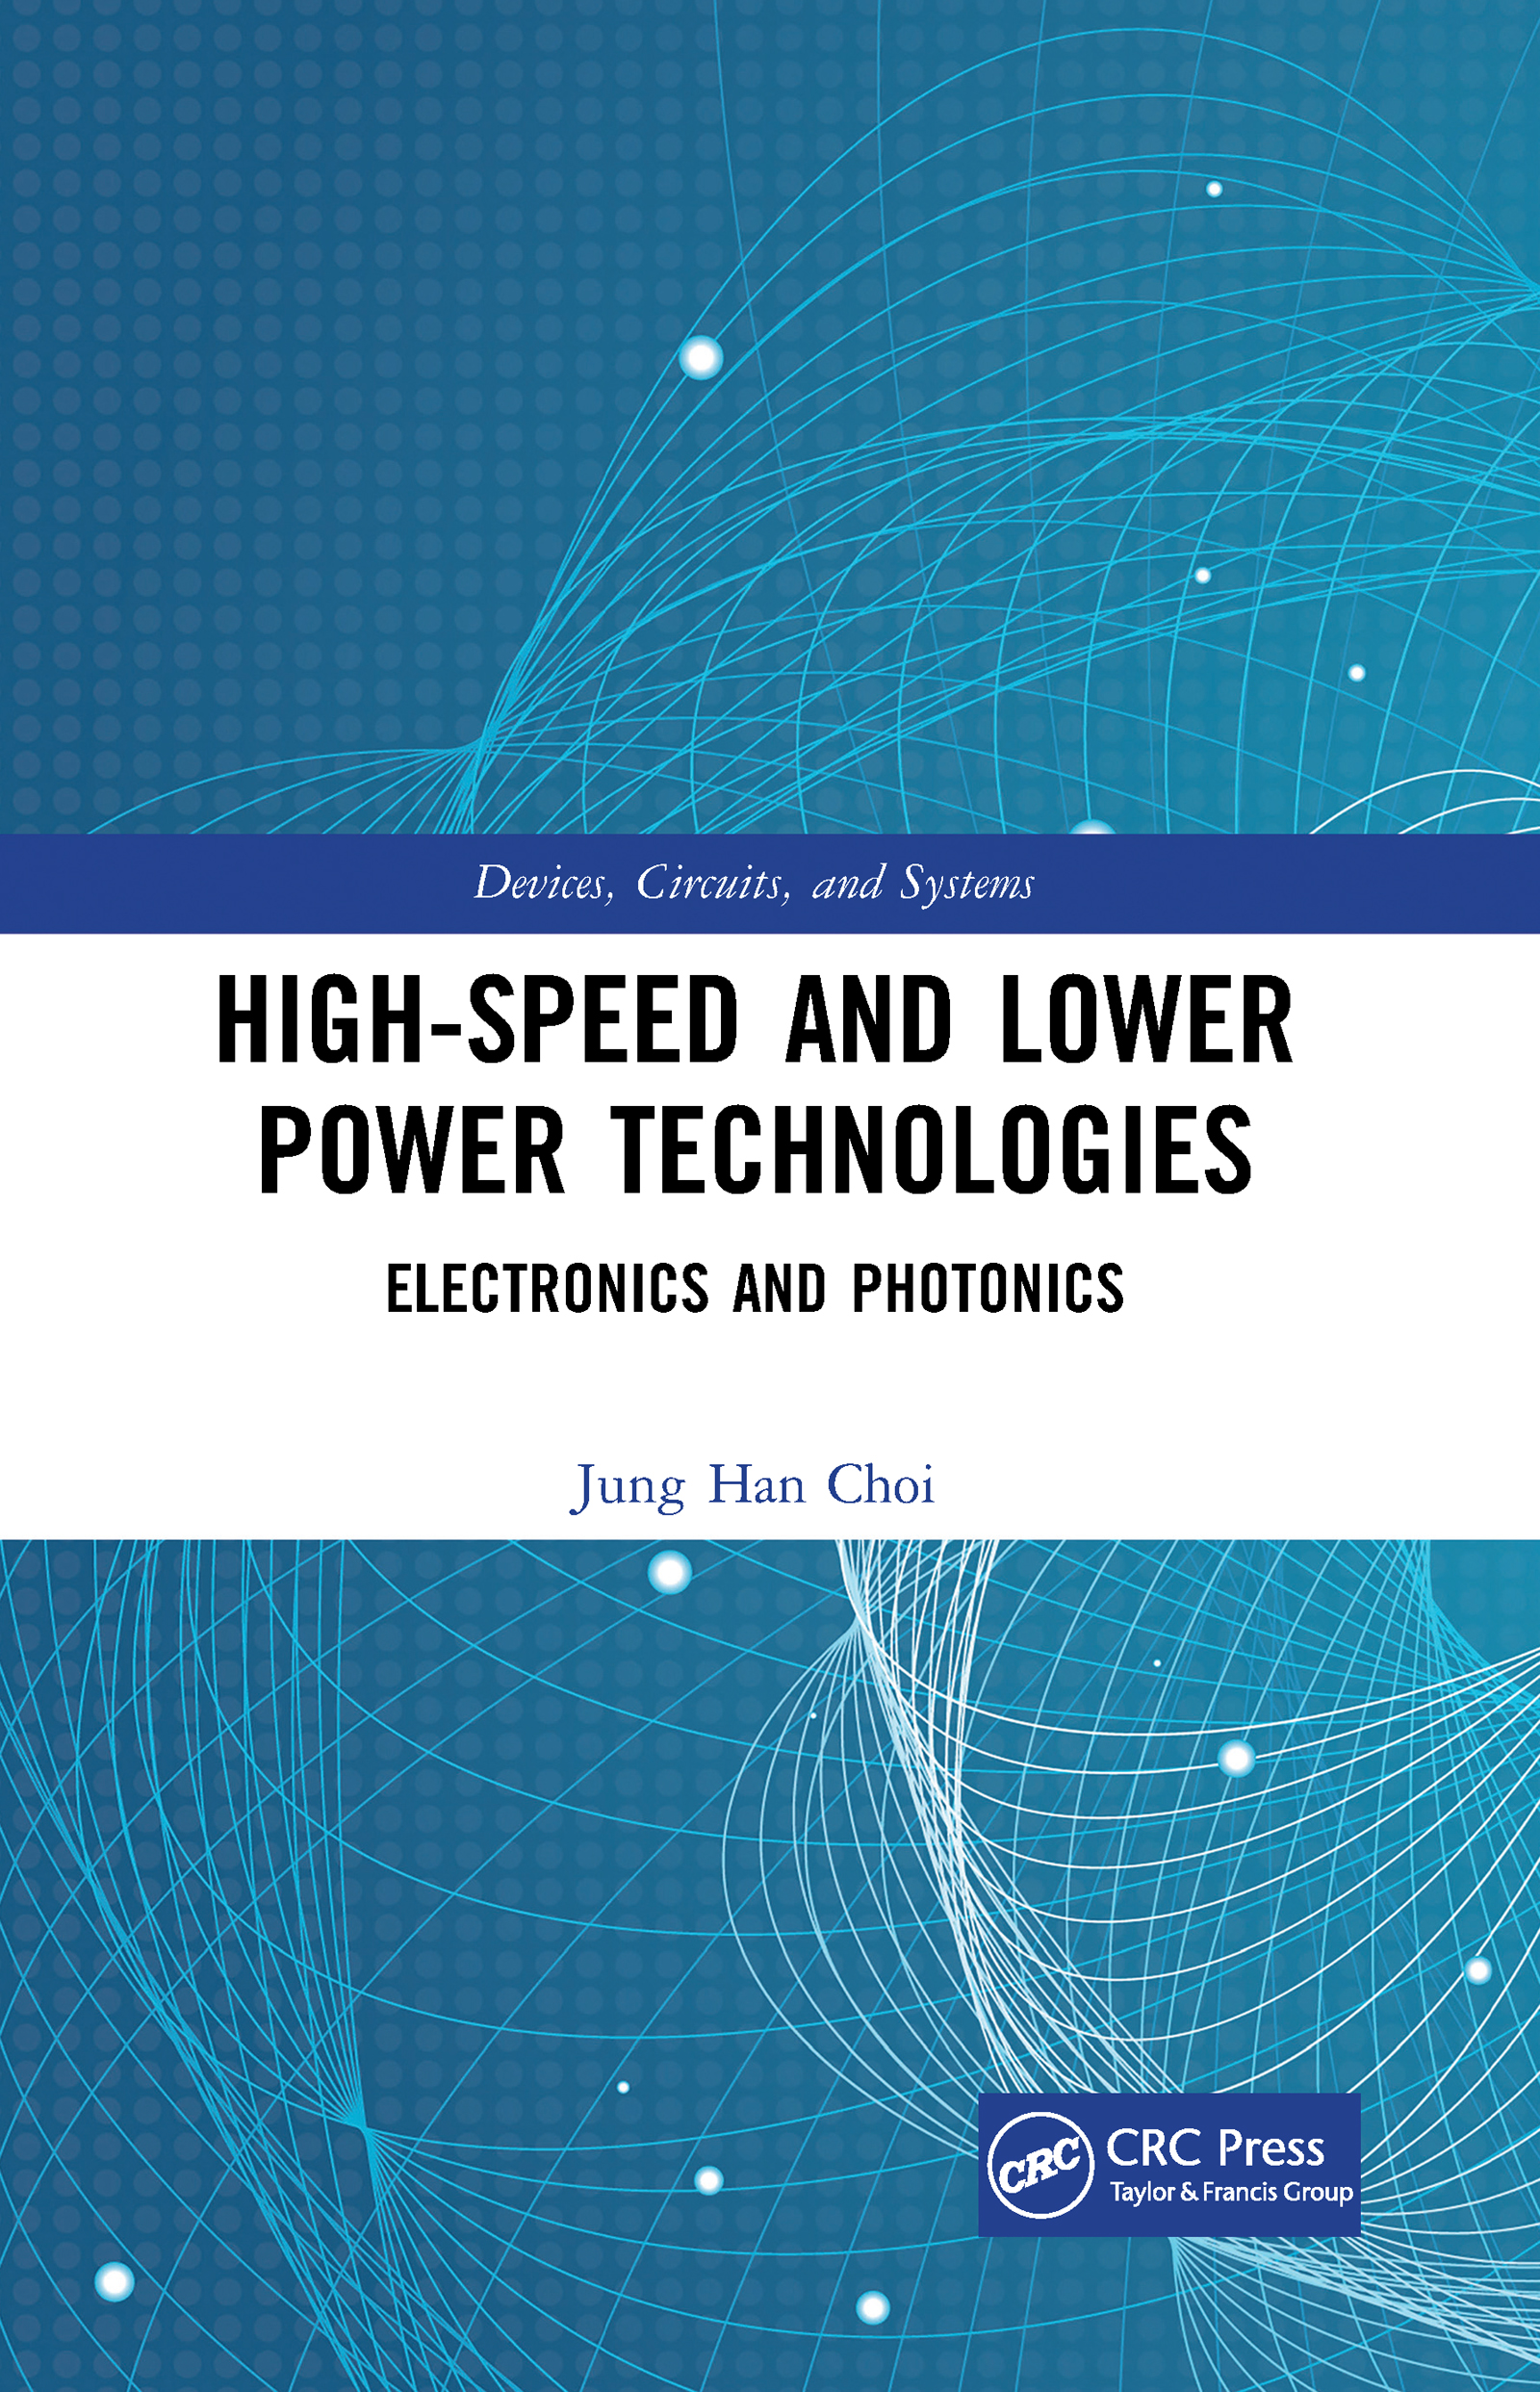 High-Speed and Lower Power Technologies